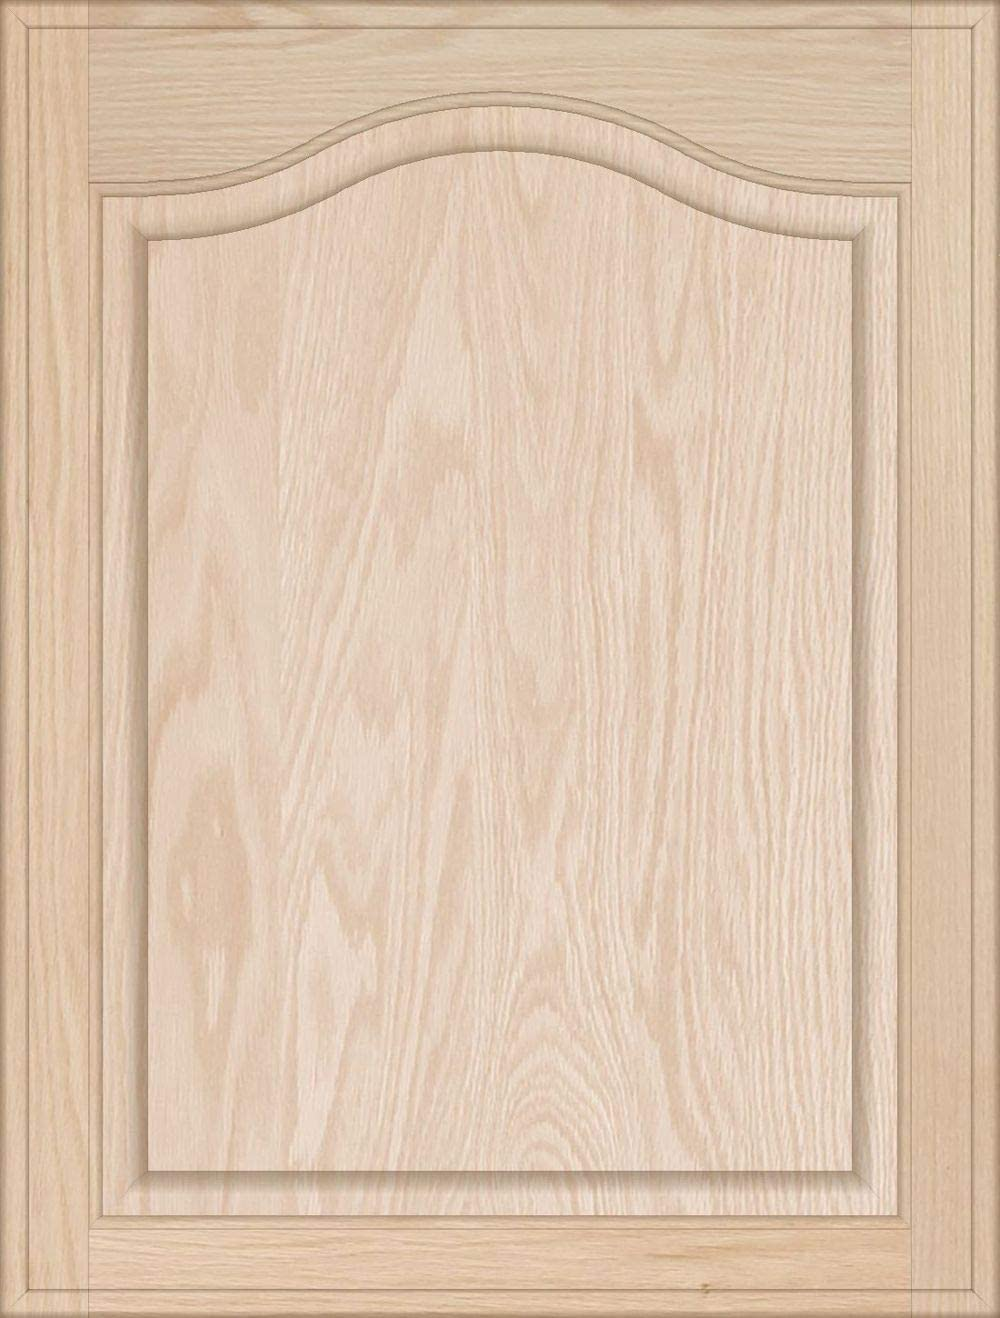 8H x 22W Unfinished Oak Flat Drawer Front with Edge Detail by Kendor